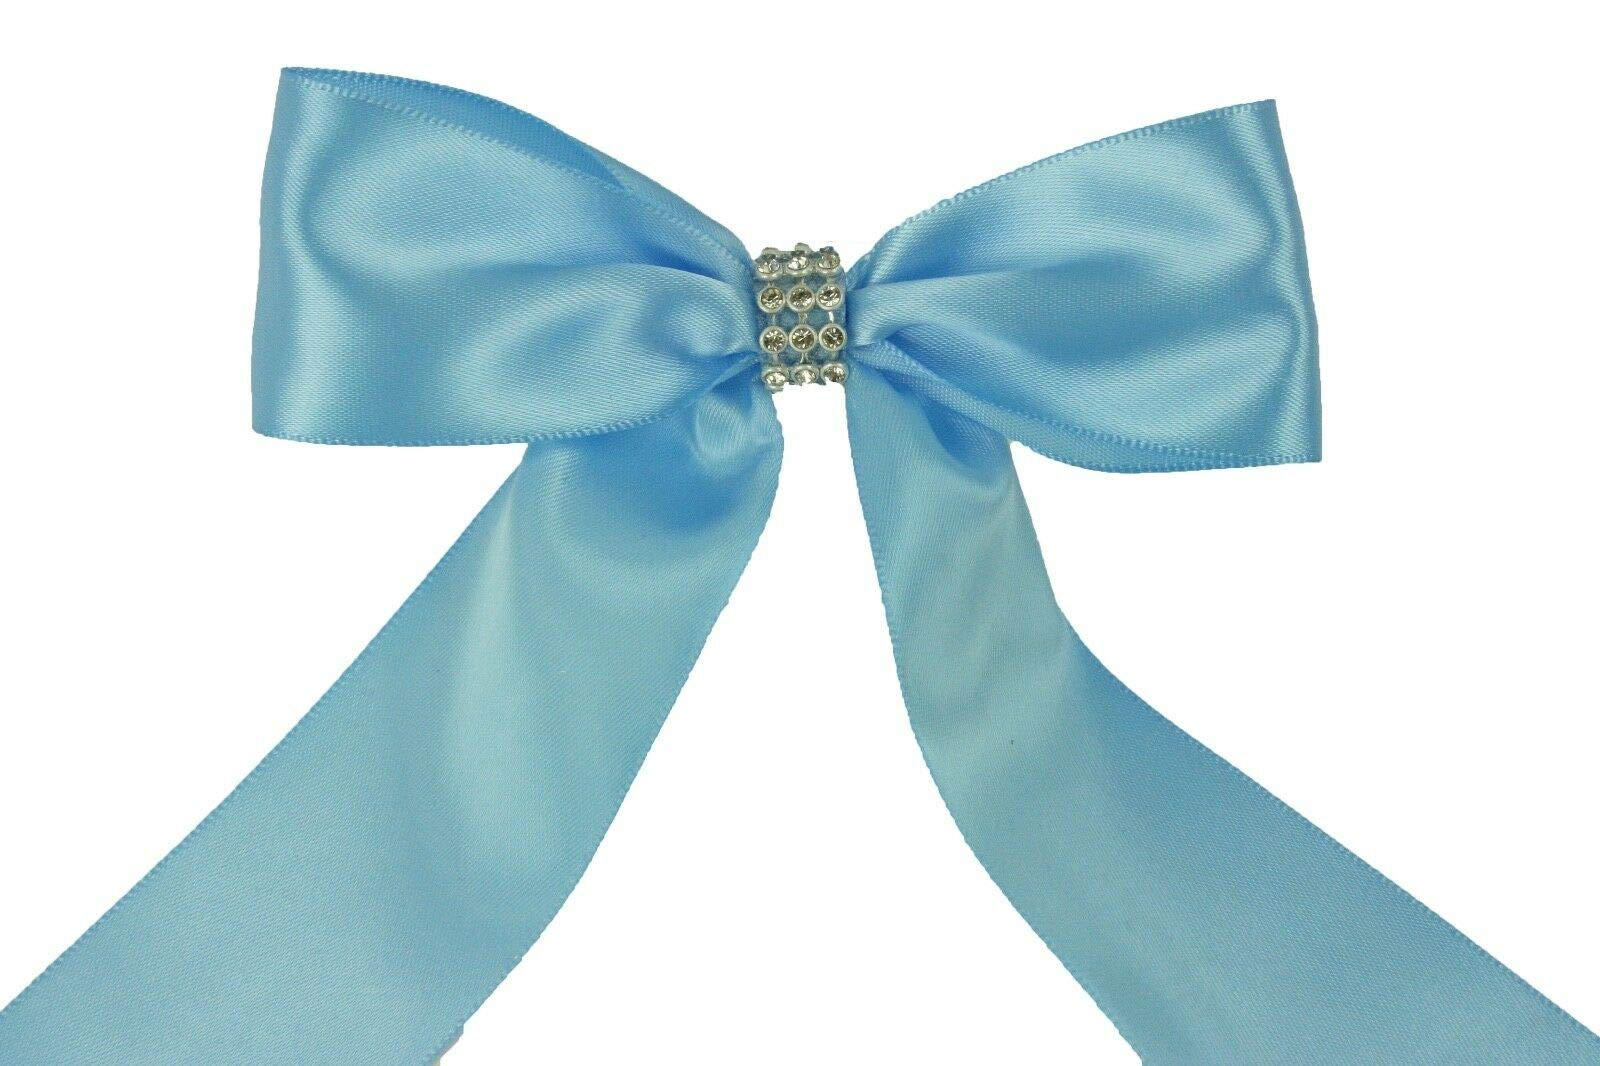 Bright Sun Blue Mist (Set of 10) Pre-Made 1-1/2'' Satin Bows Rhinestone Center Design with Wire Tie #DPNH